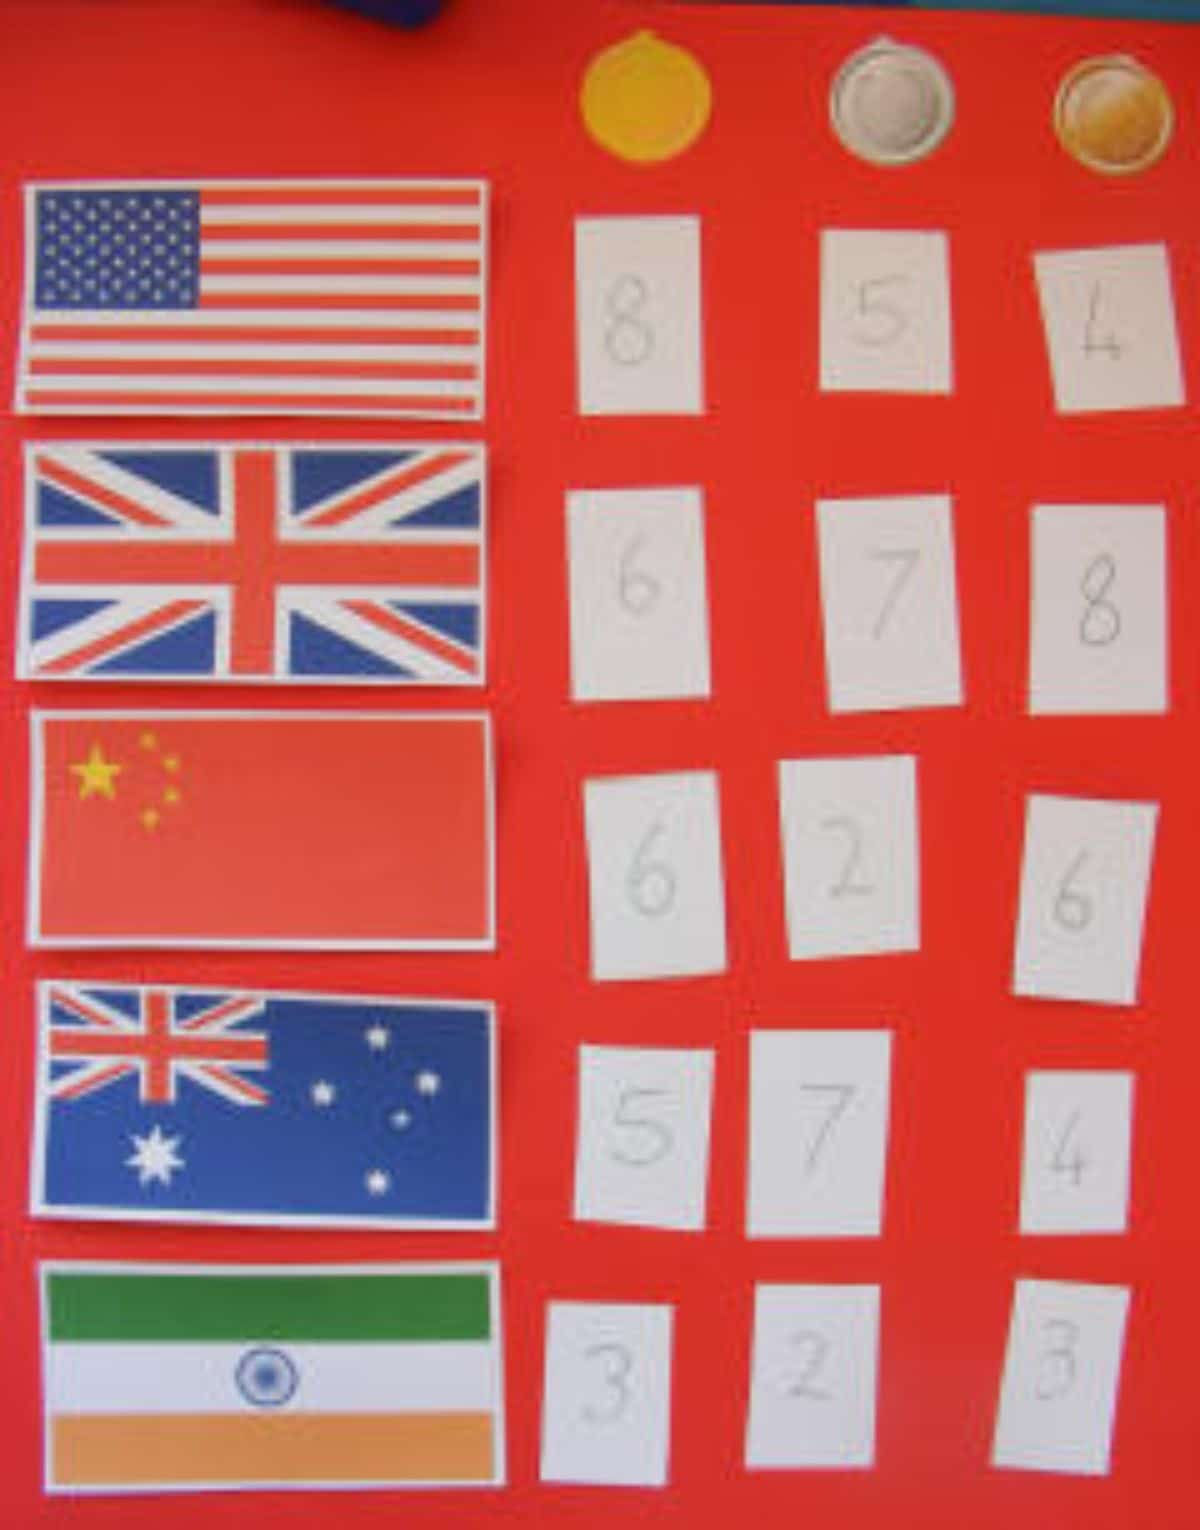 a sheet of paper with an American, British, Chinese, Australian and Indian flag have a medal tally chart next to them